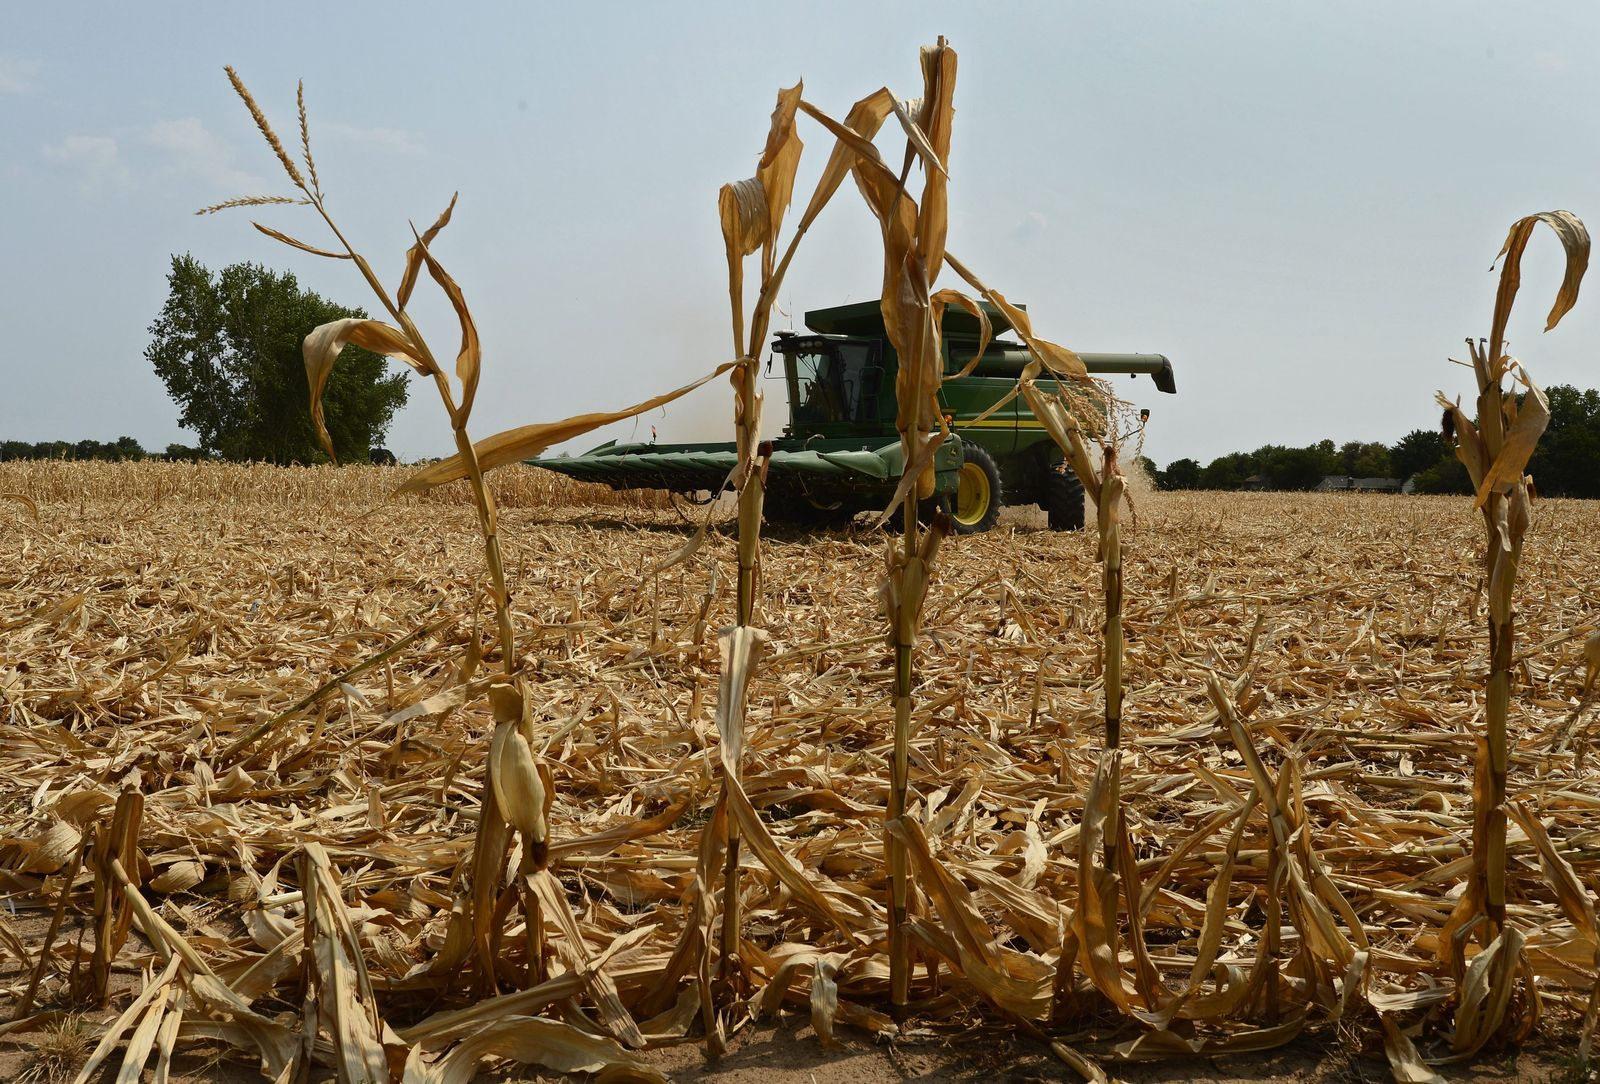 Severe drought across most of the mid-west is affecting crops and